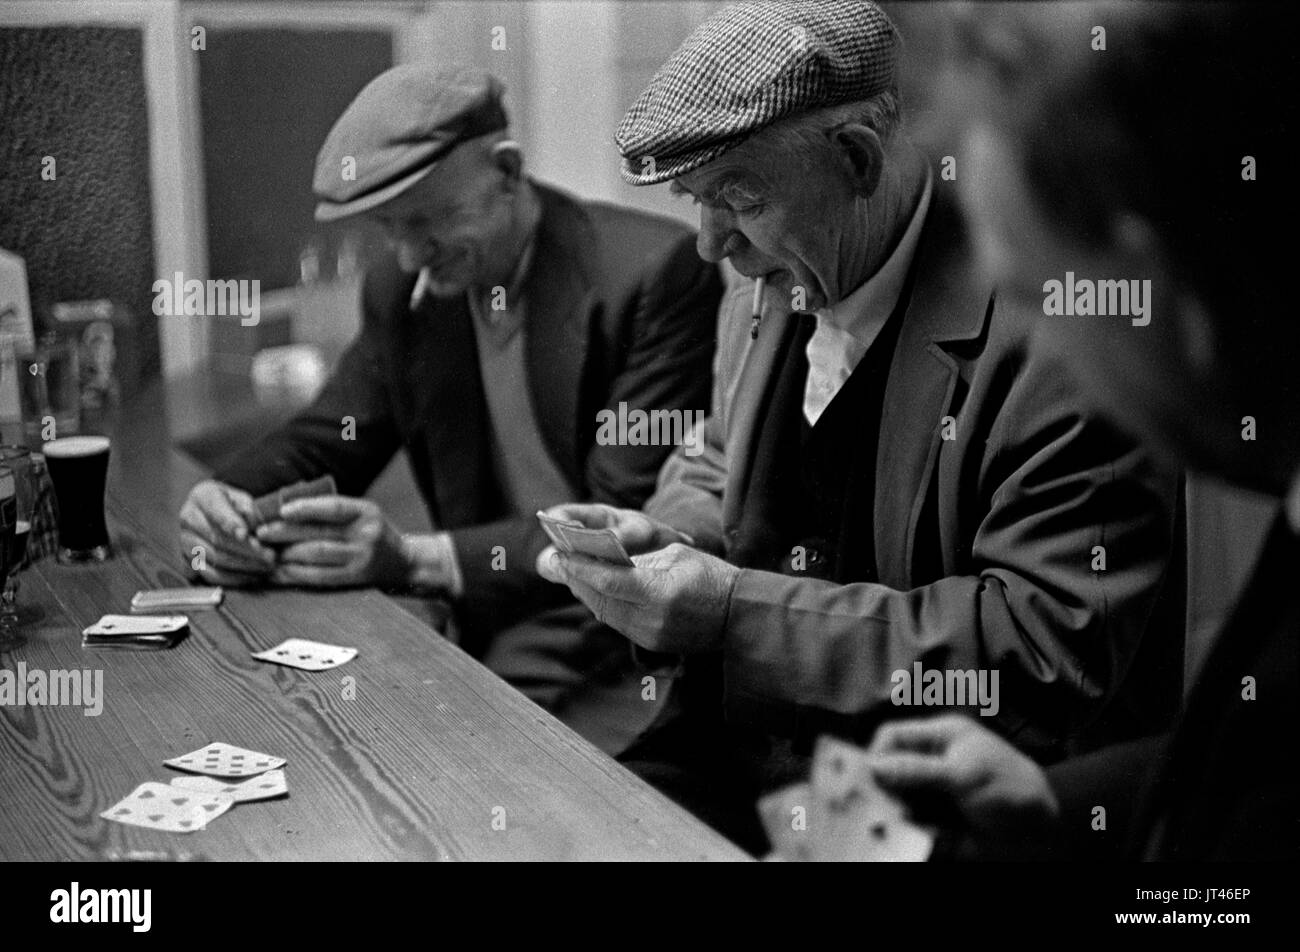 Ireland west coast group men playing cards in village pub, friendship community 1969 1960s HOMER SYKES - Stock Image